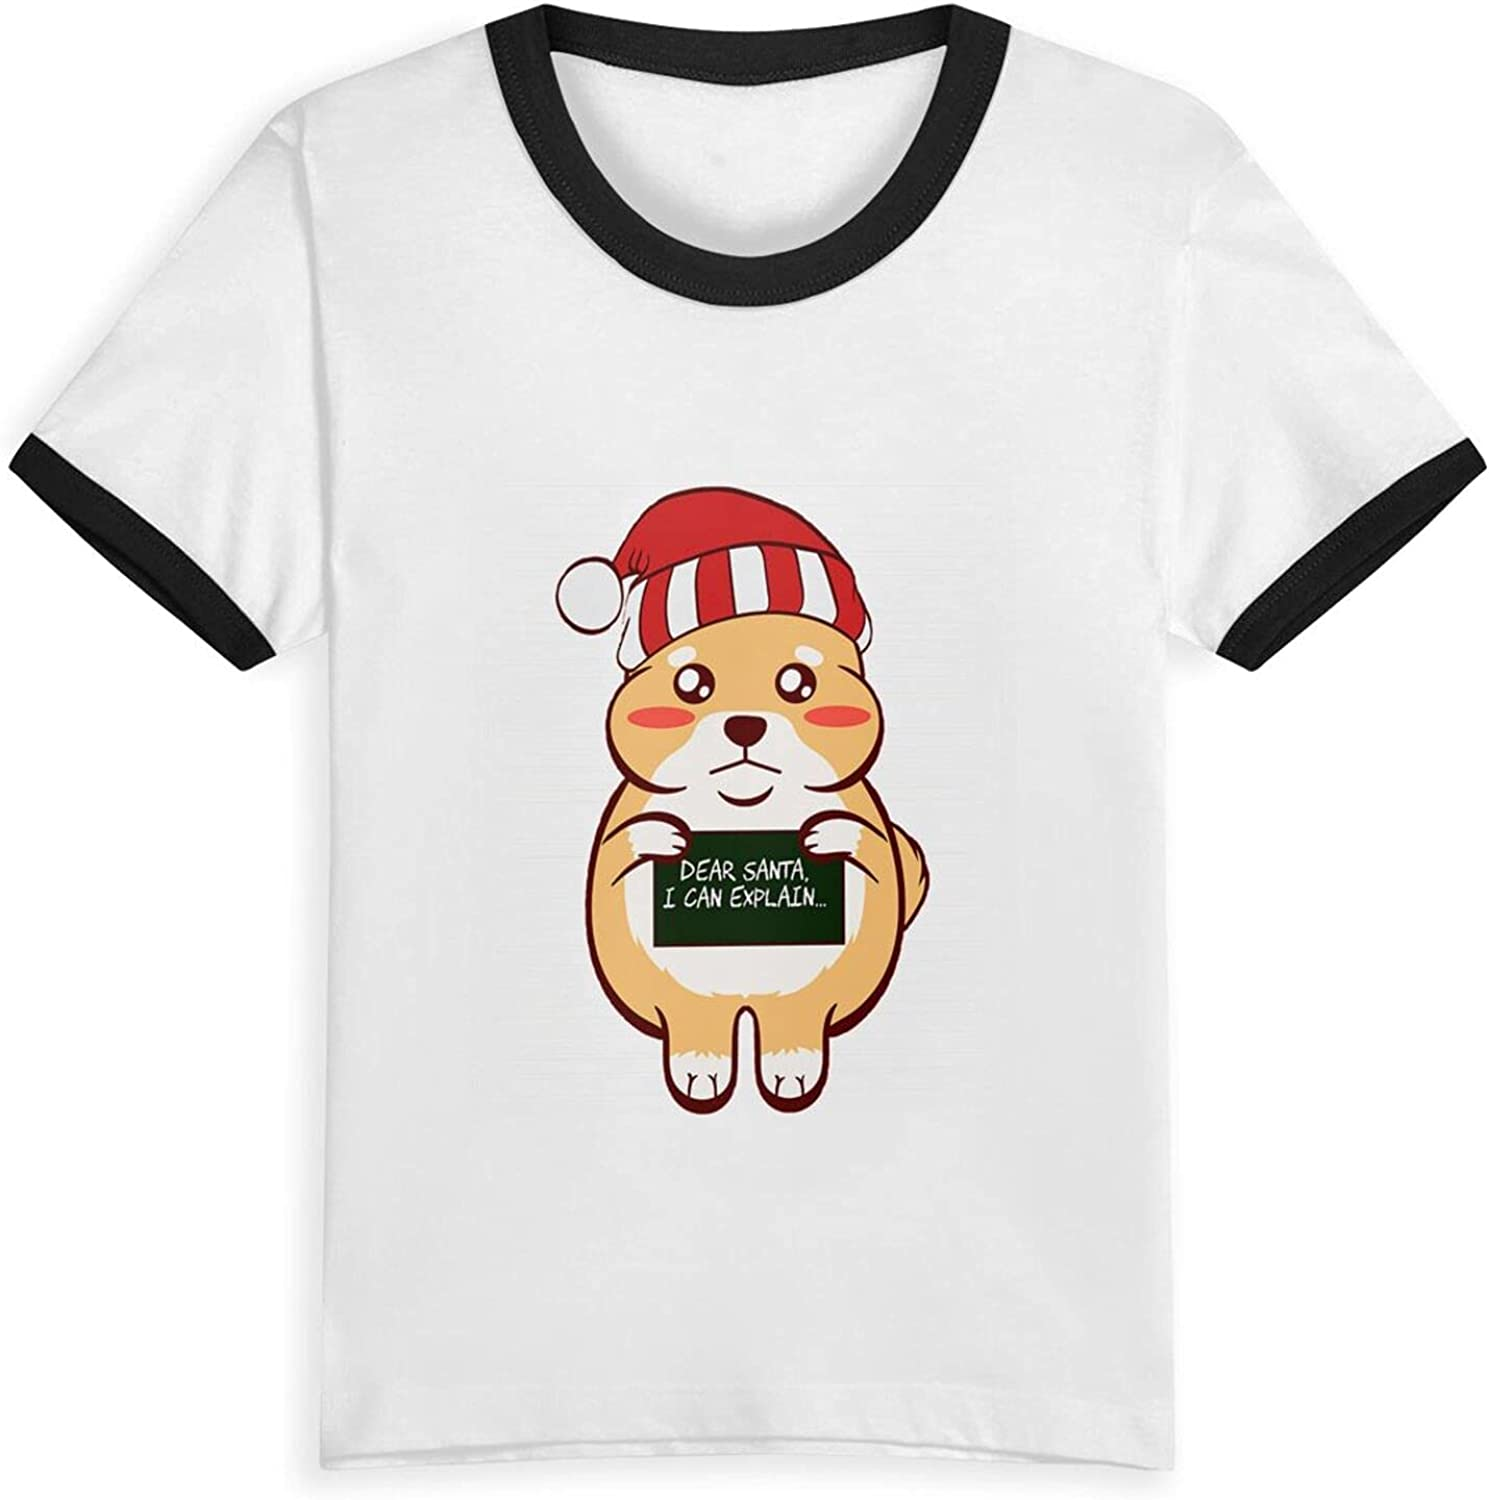 Meow Cat Kitten Dear Santa I Can Explain Naughty List Christmas T-Shirts Novelty for Kids Tees with Cool Designs